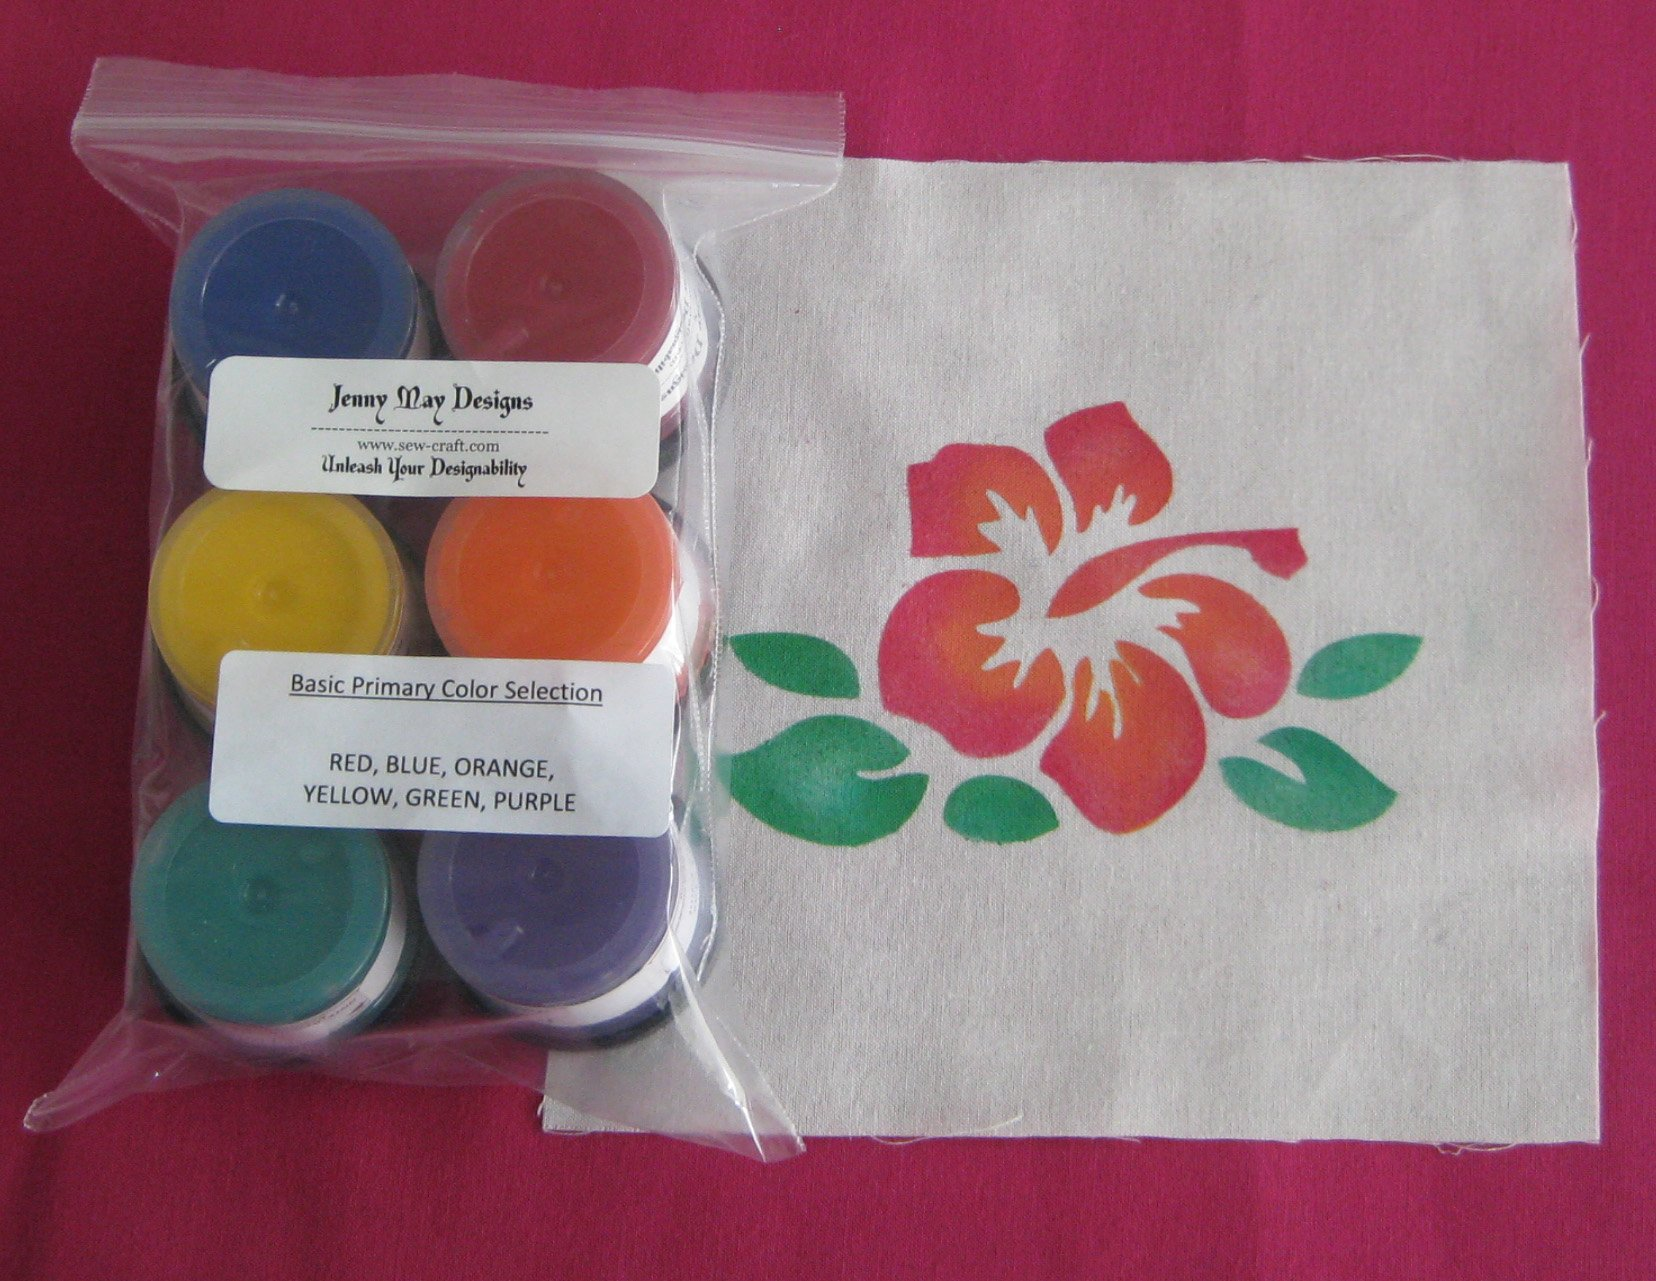 basic primary color paint set 6 colors by Jenny May Designs